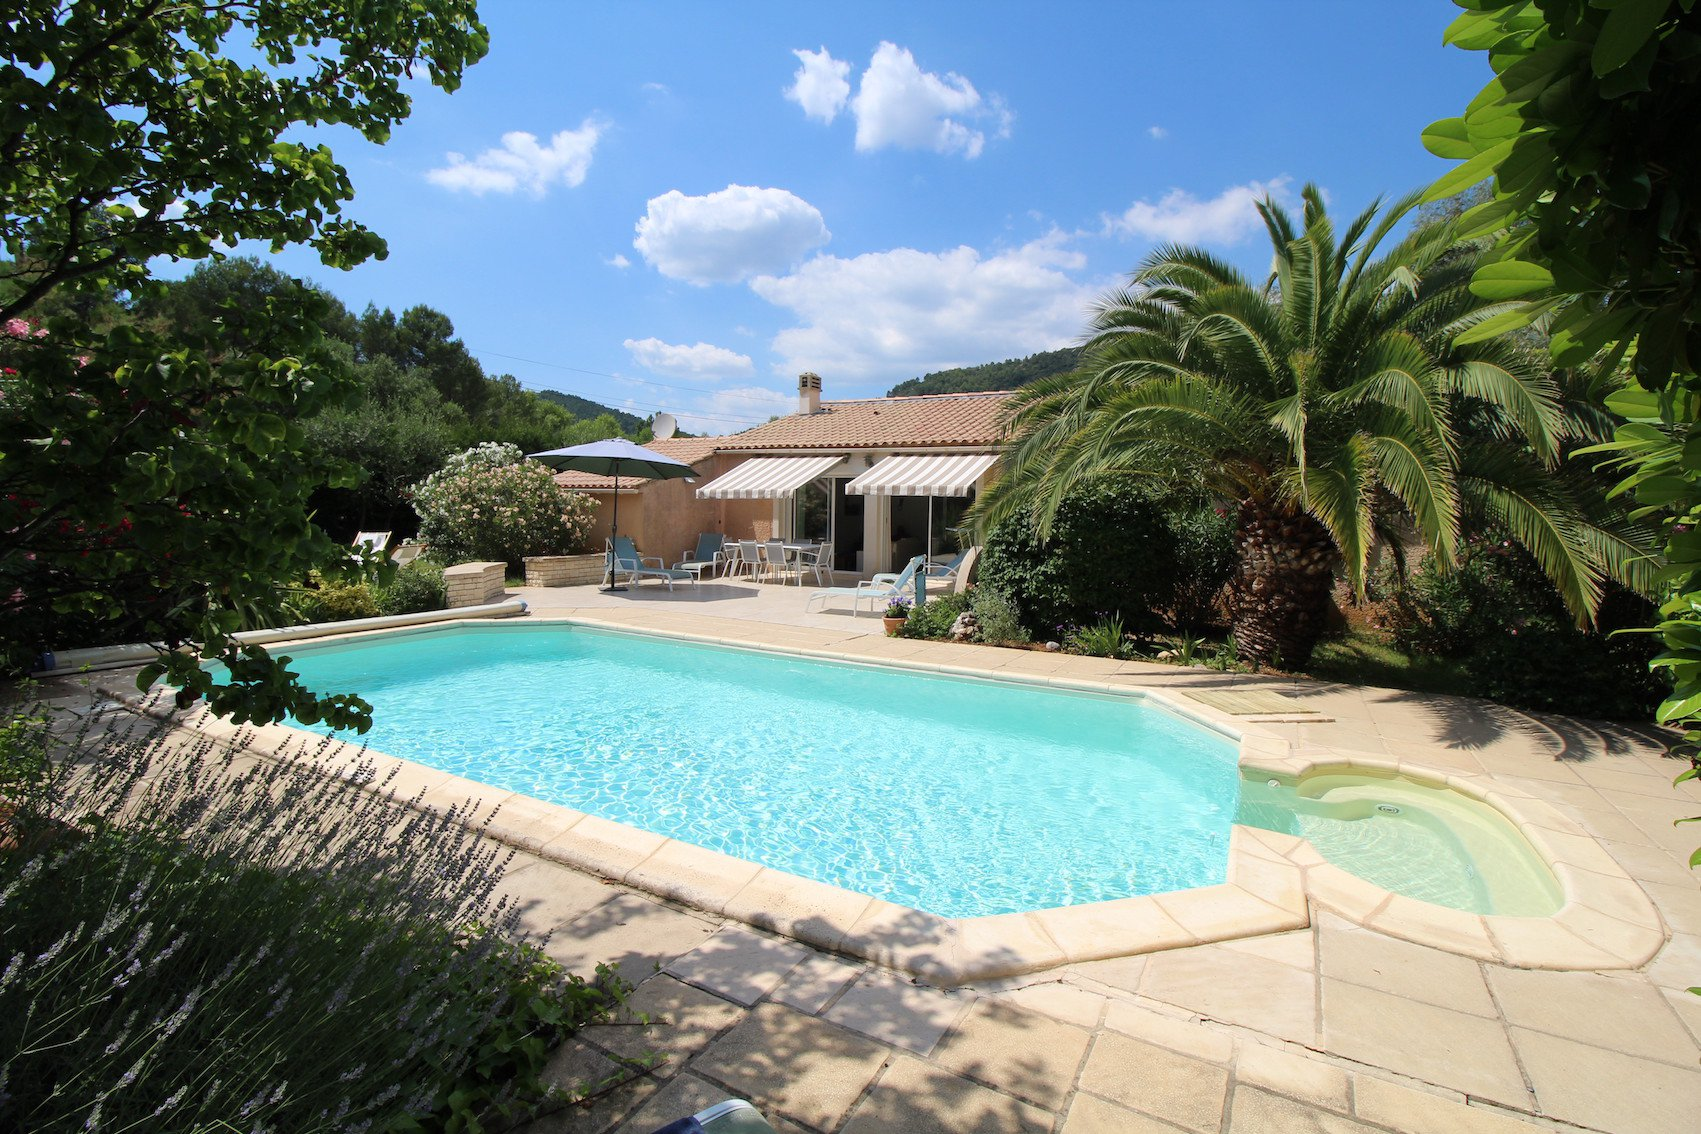 Le Val, a lovely house in the heart of Green Provence